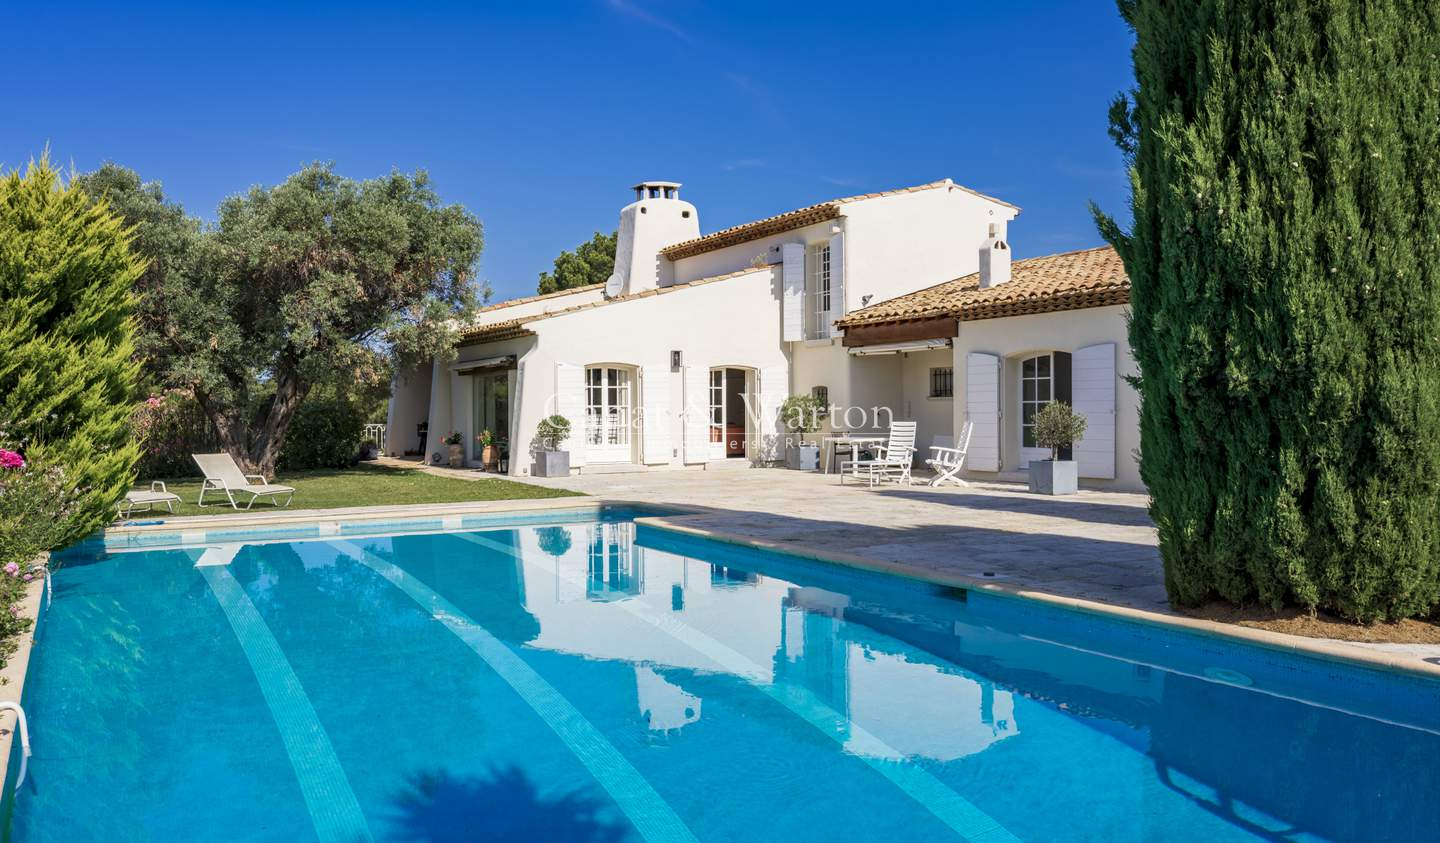 Villa with pool and terrace Ceyreste